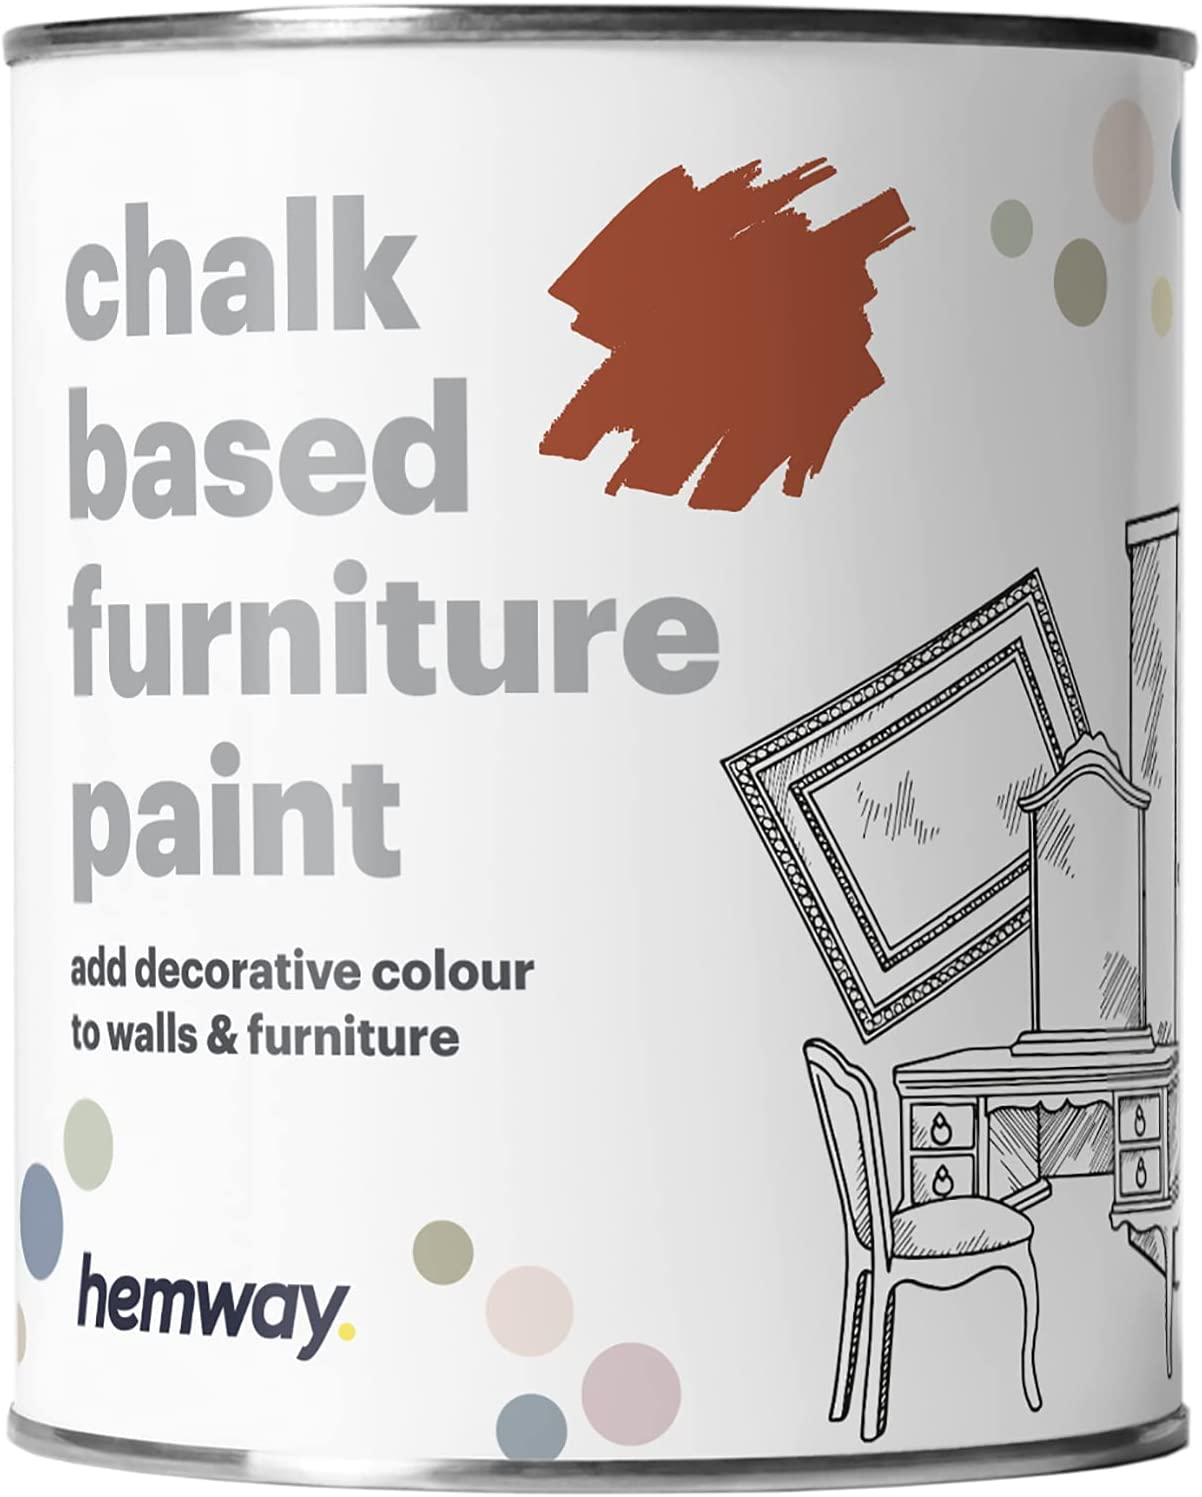 Hemway Red Oxide Chalk Based Furniture Paint Matt Finish Wall and Upcycle DIY Home Improvement 1L / 35oz Shabby Chic Vintage Chalky